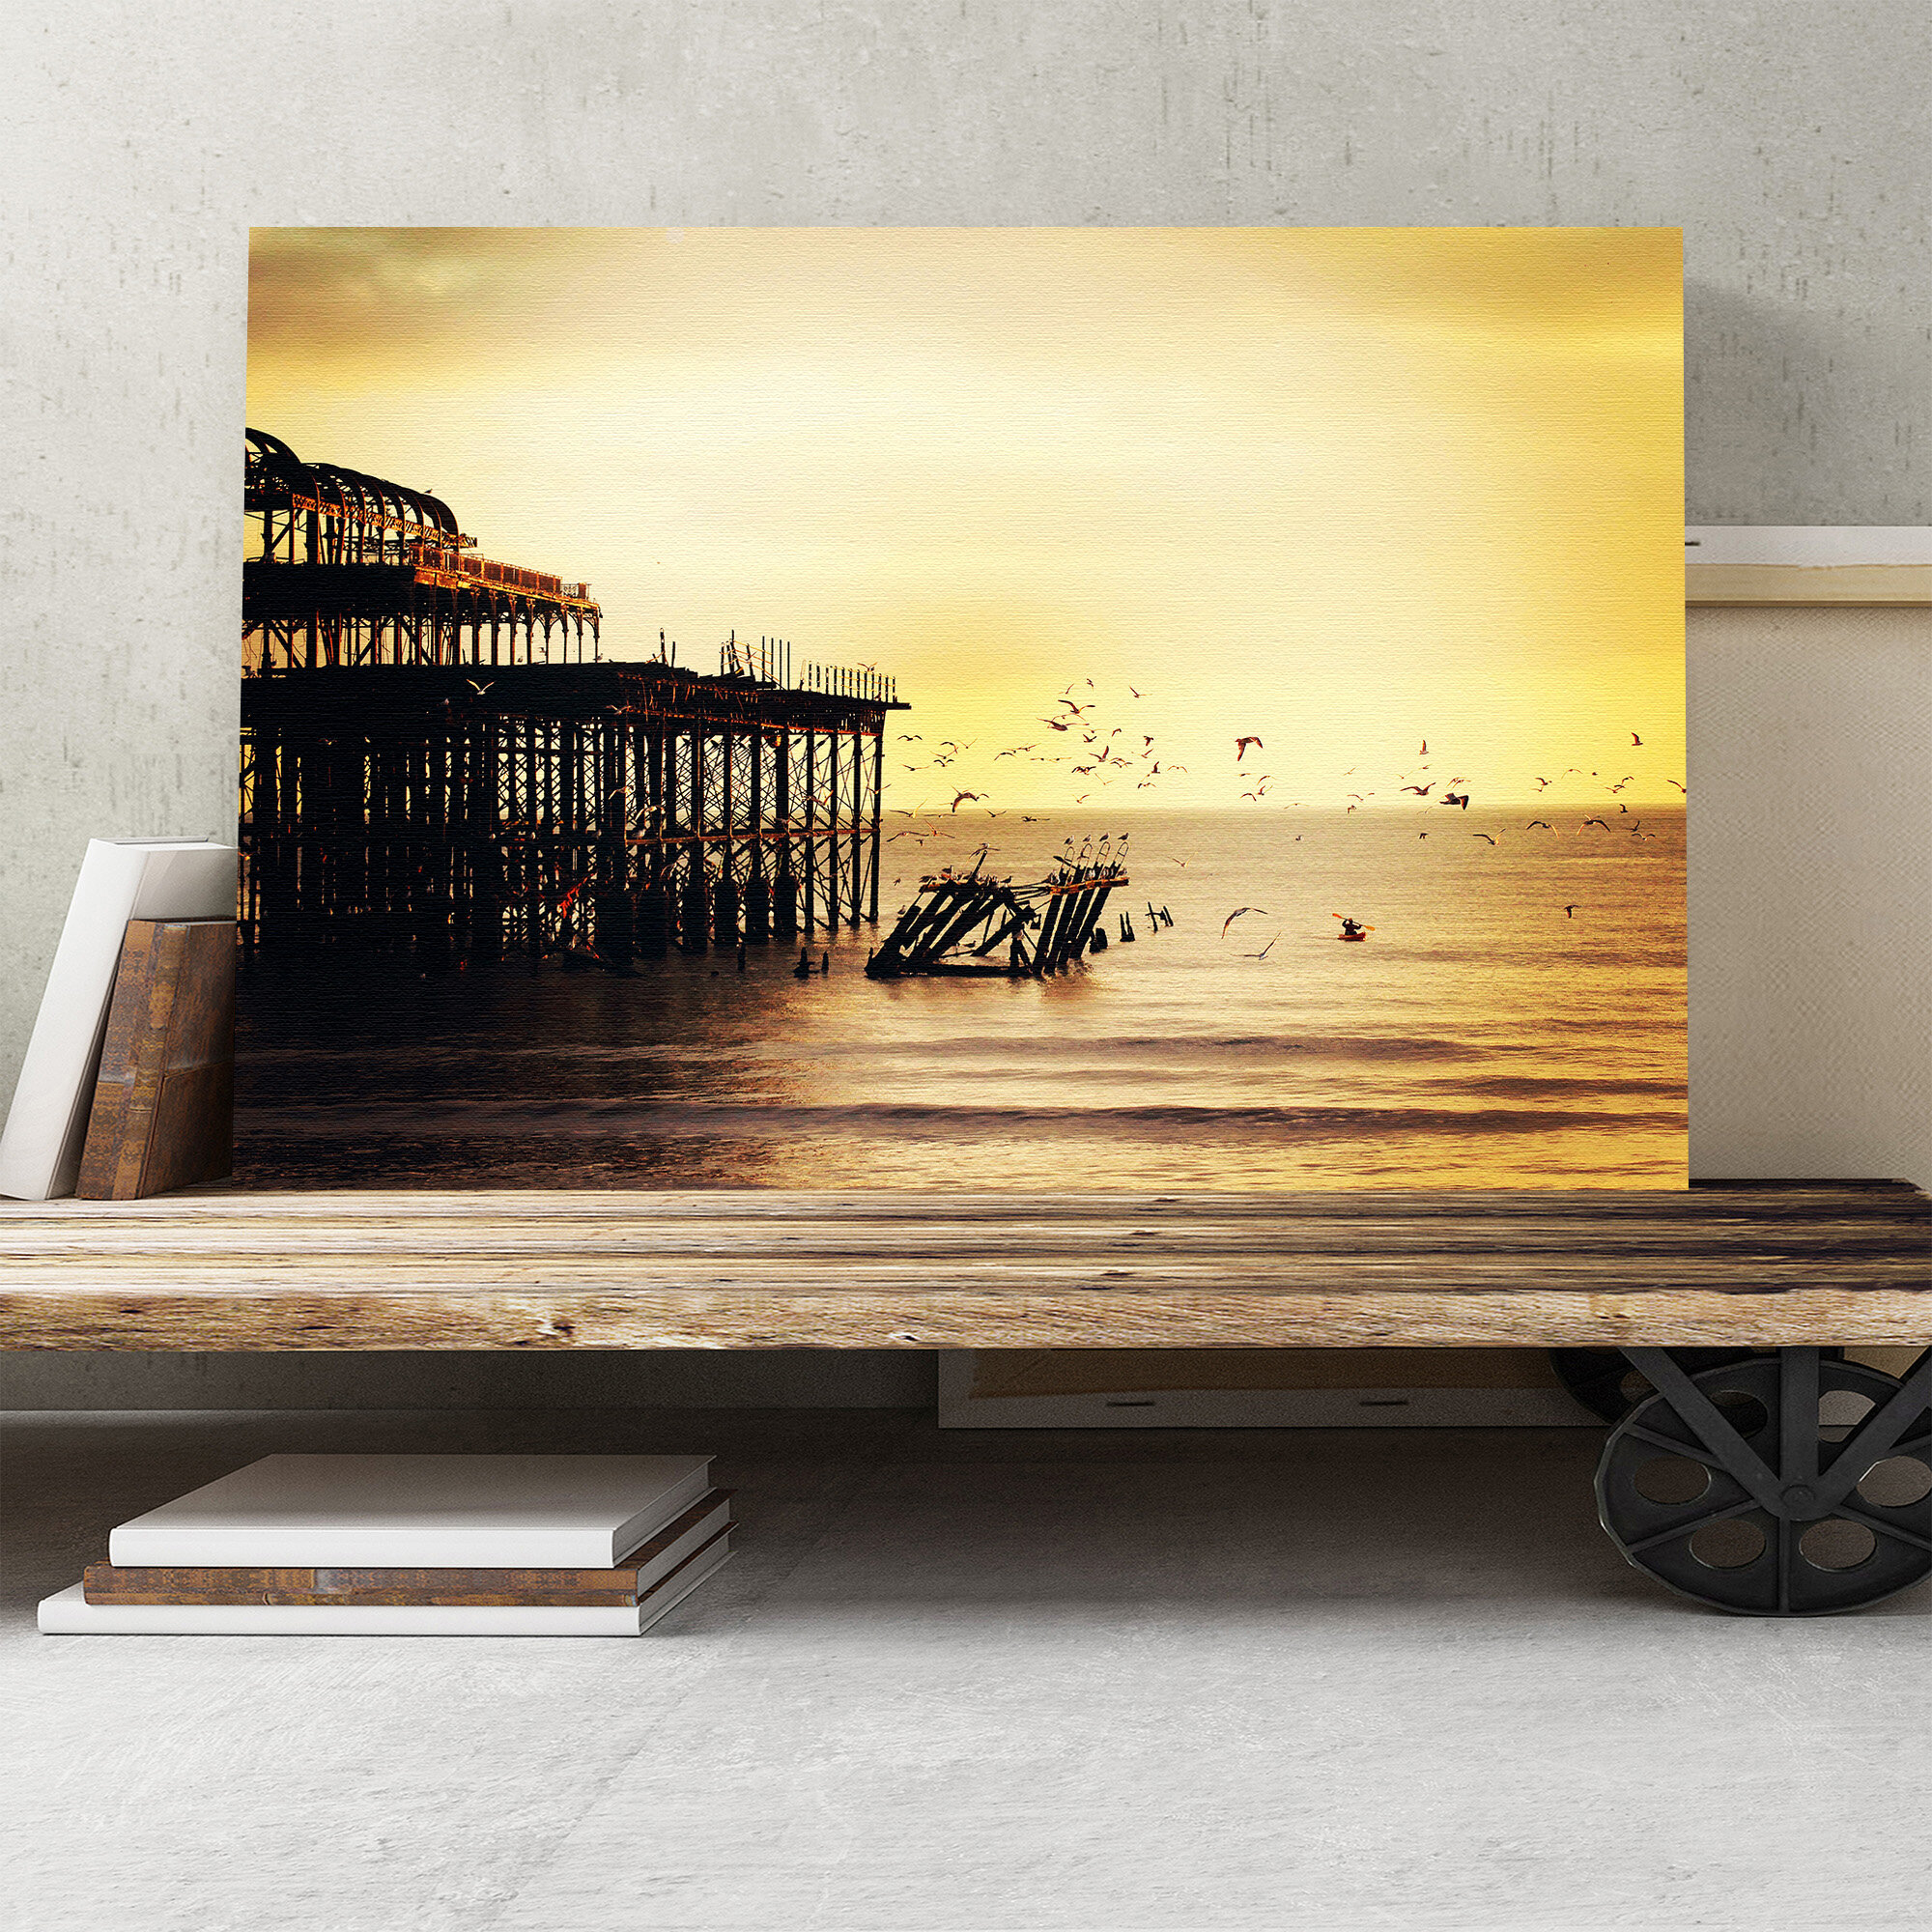 Seascape At Dawn With West Pier In Brighton Canvas Wall Art prints high quality